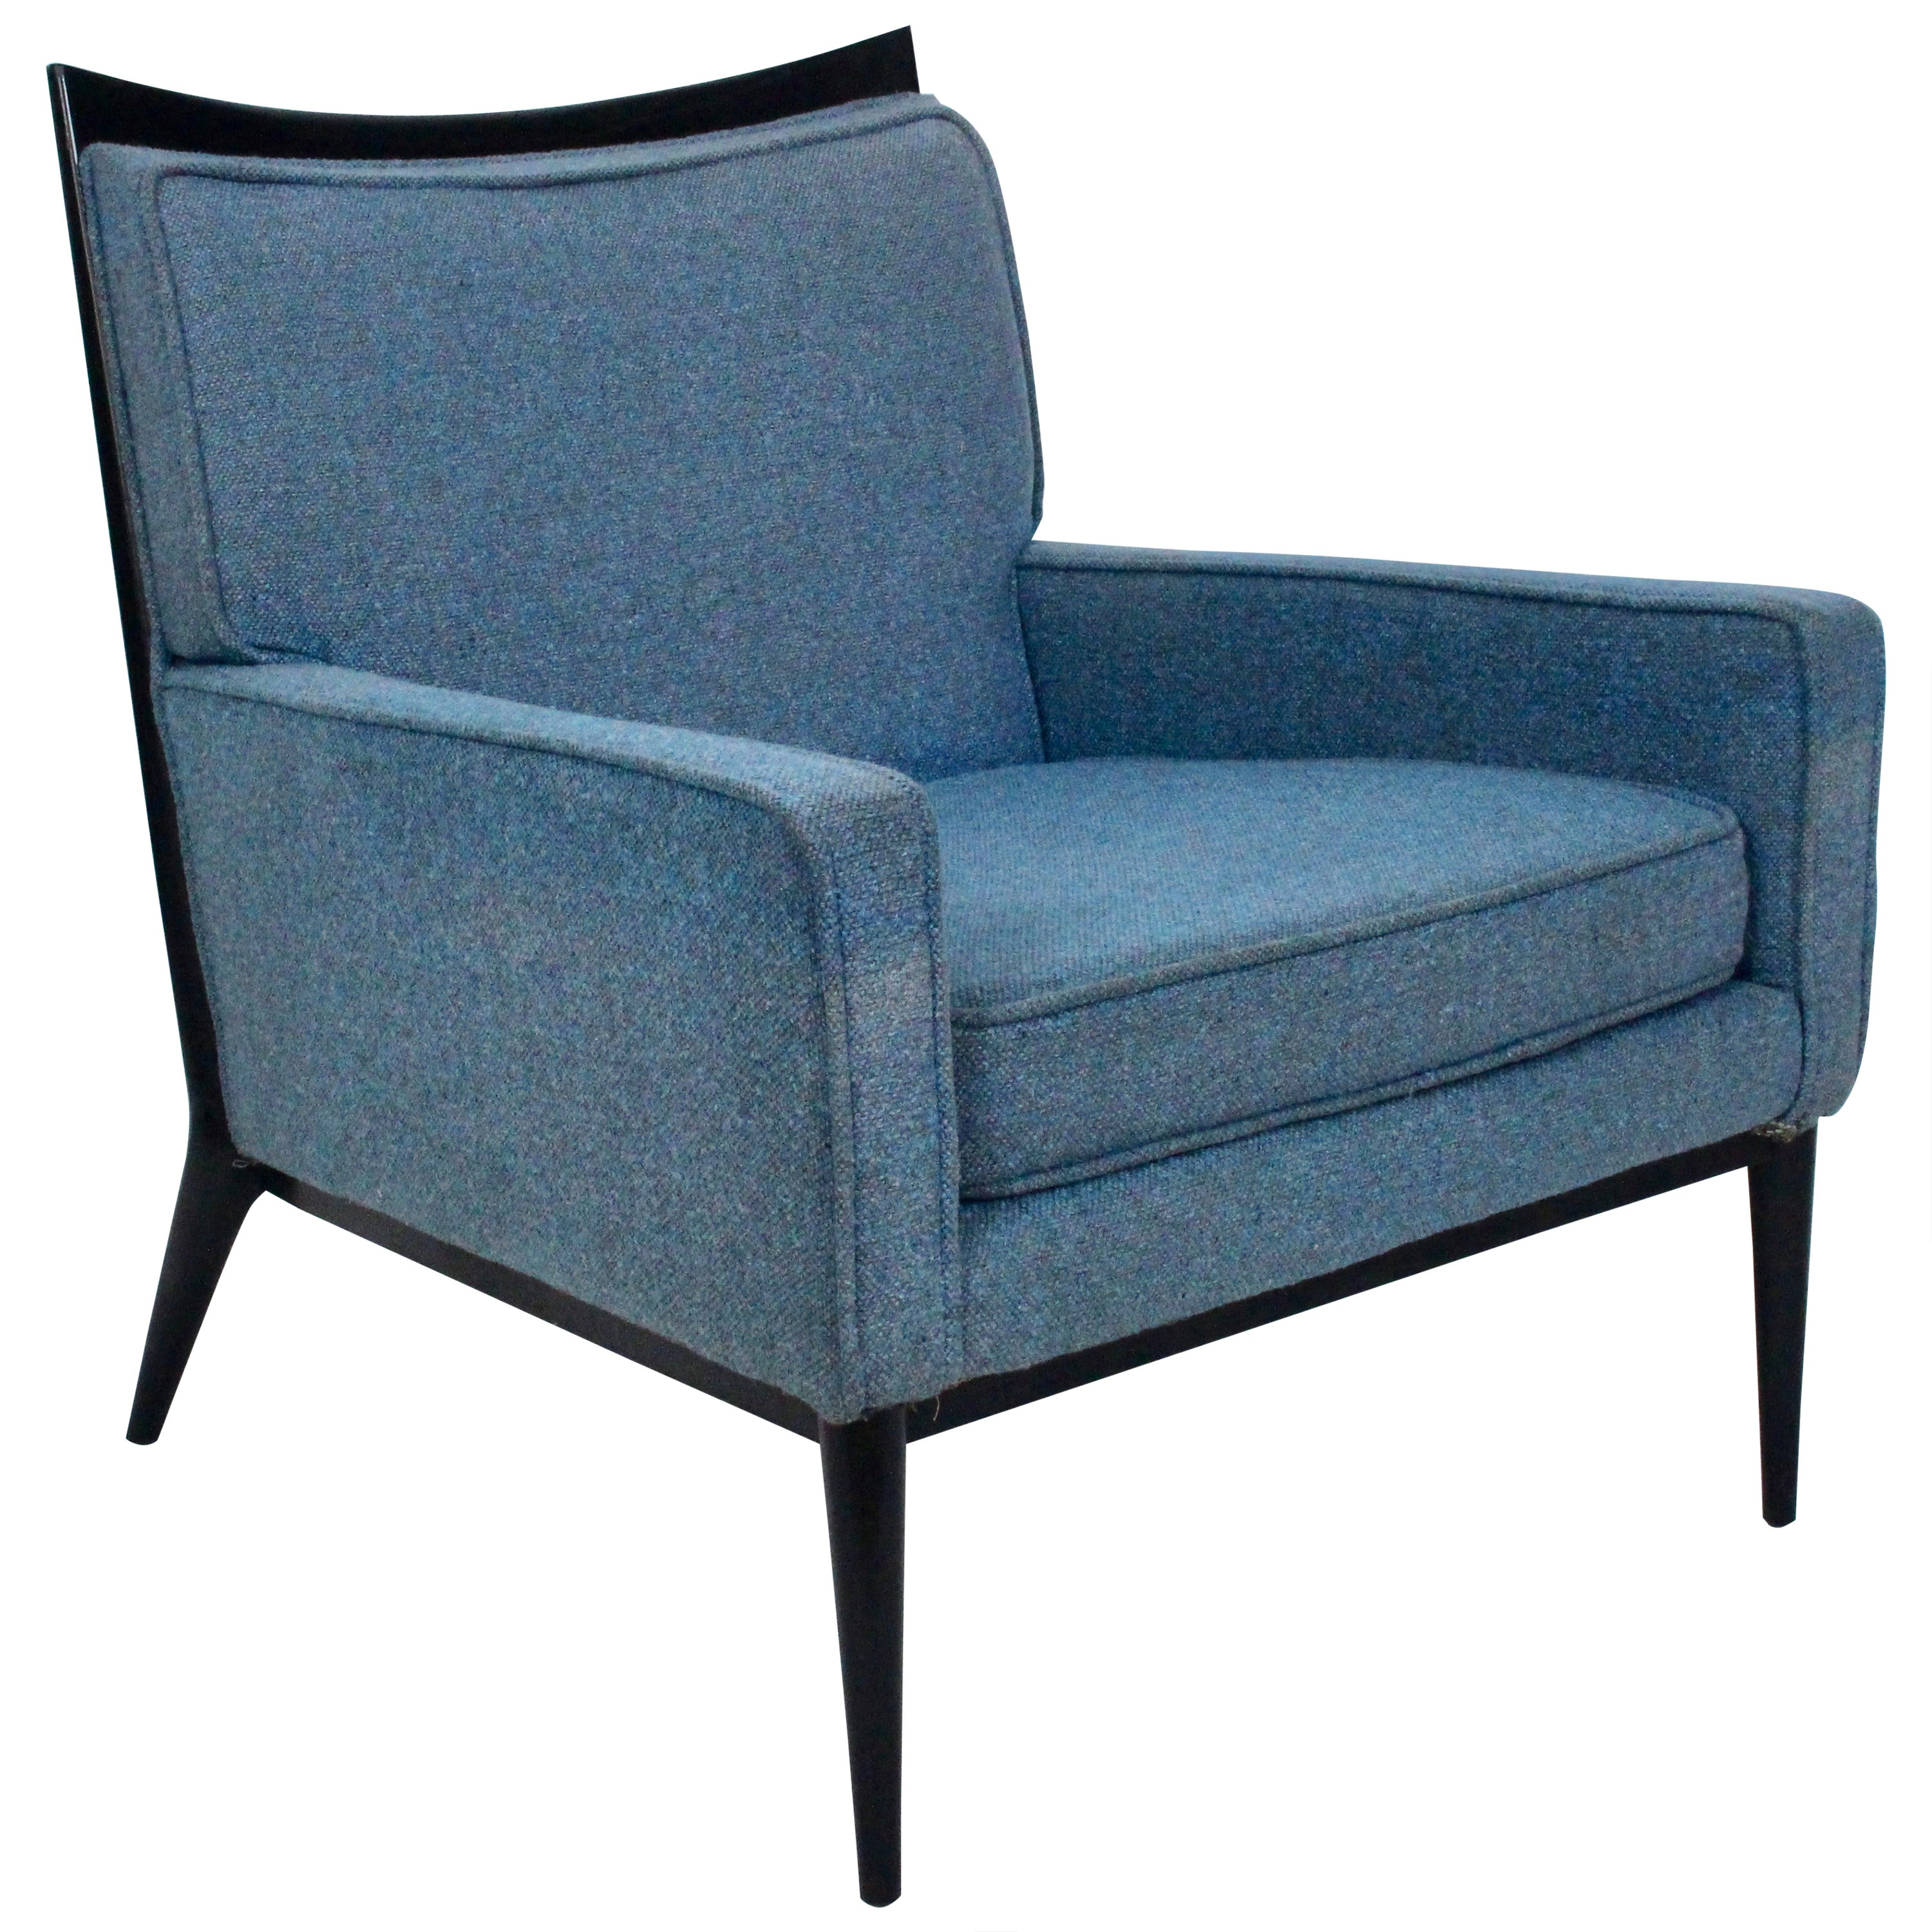 Paul McCobb for Directional Model 1322 Lounge Chair